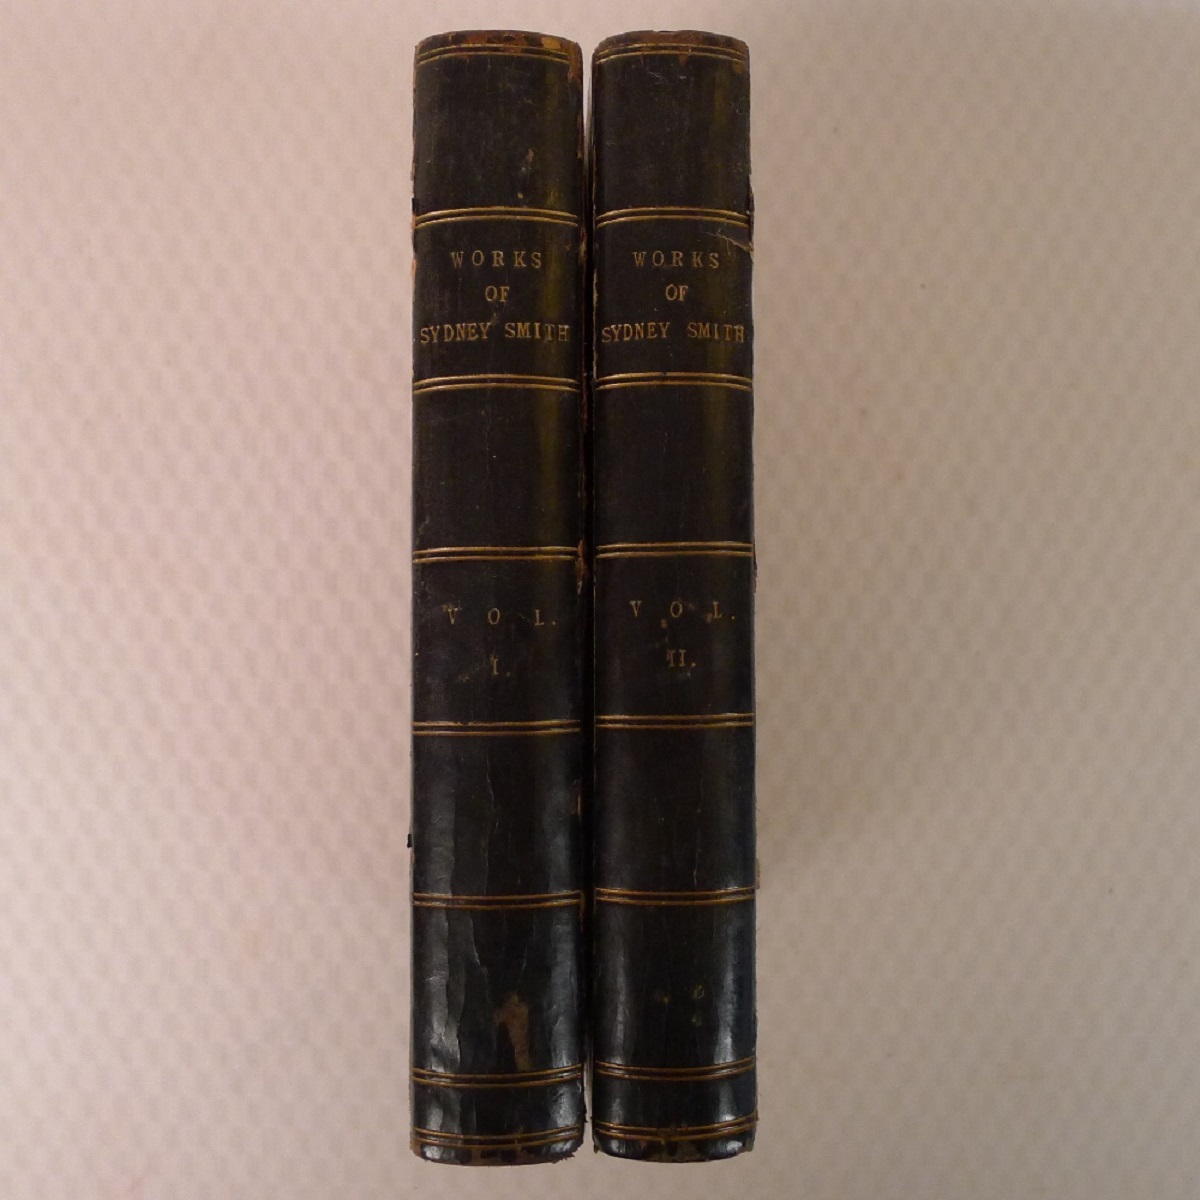 The works of the Rev. Sydney Smith including his contributions to the Edinburgh Review published